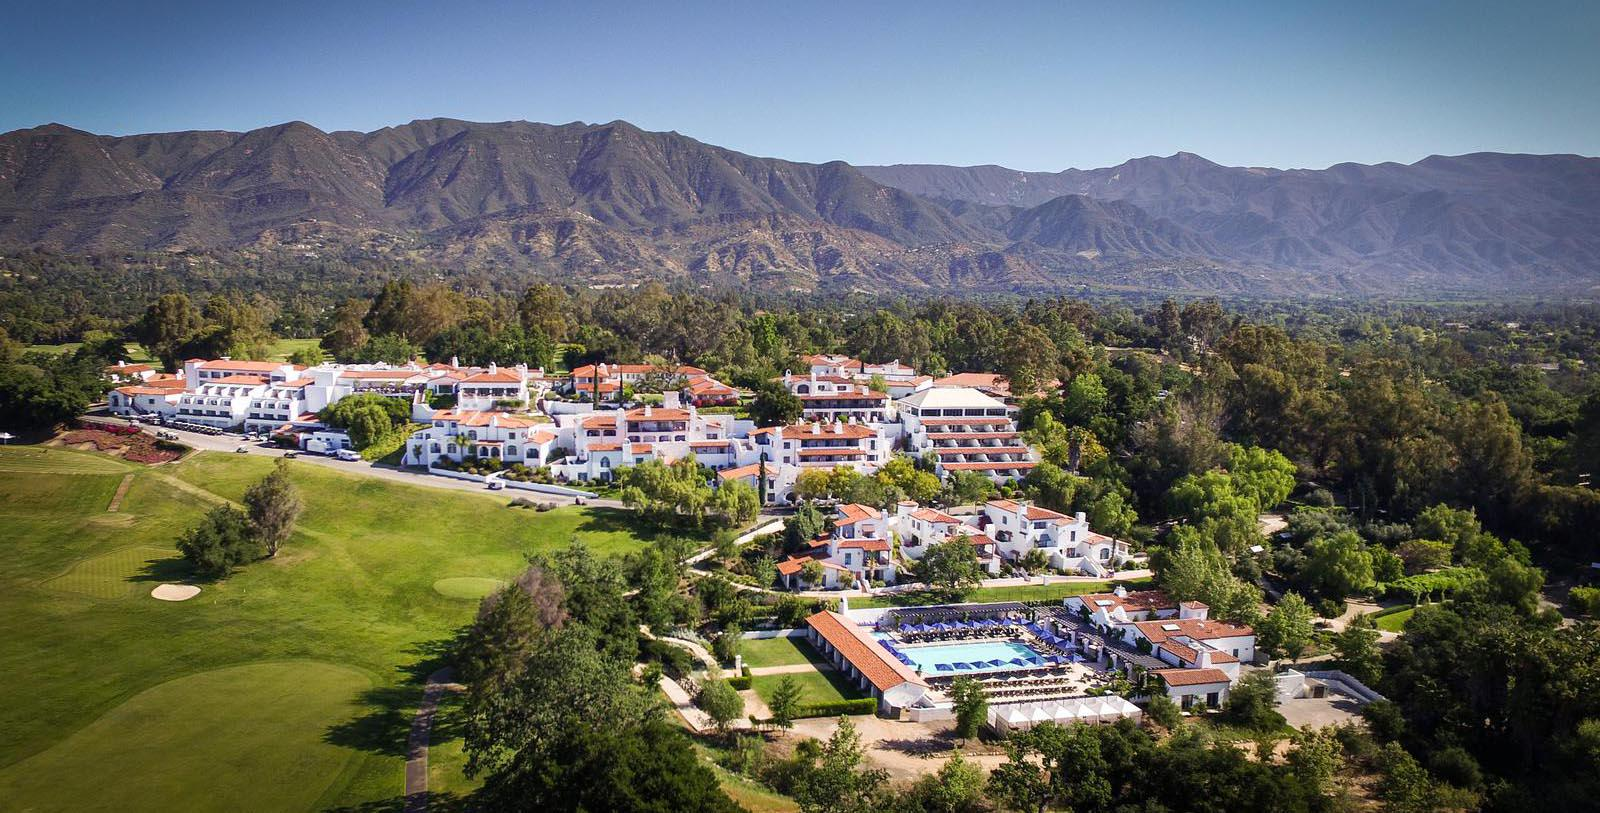 Image of aerial of the Ojai Valley Inn in California.